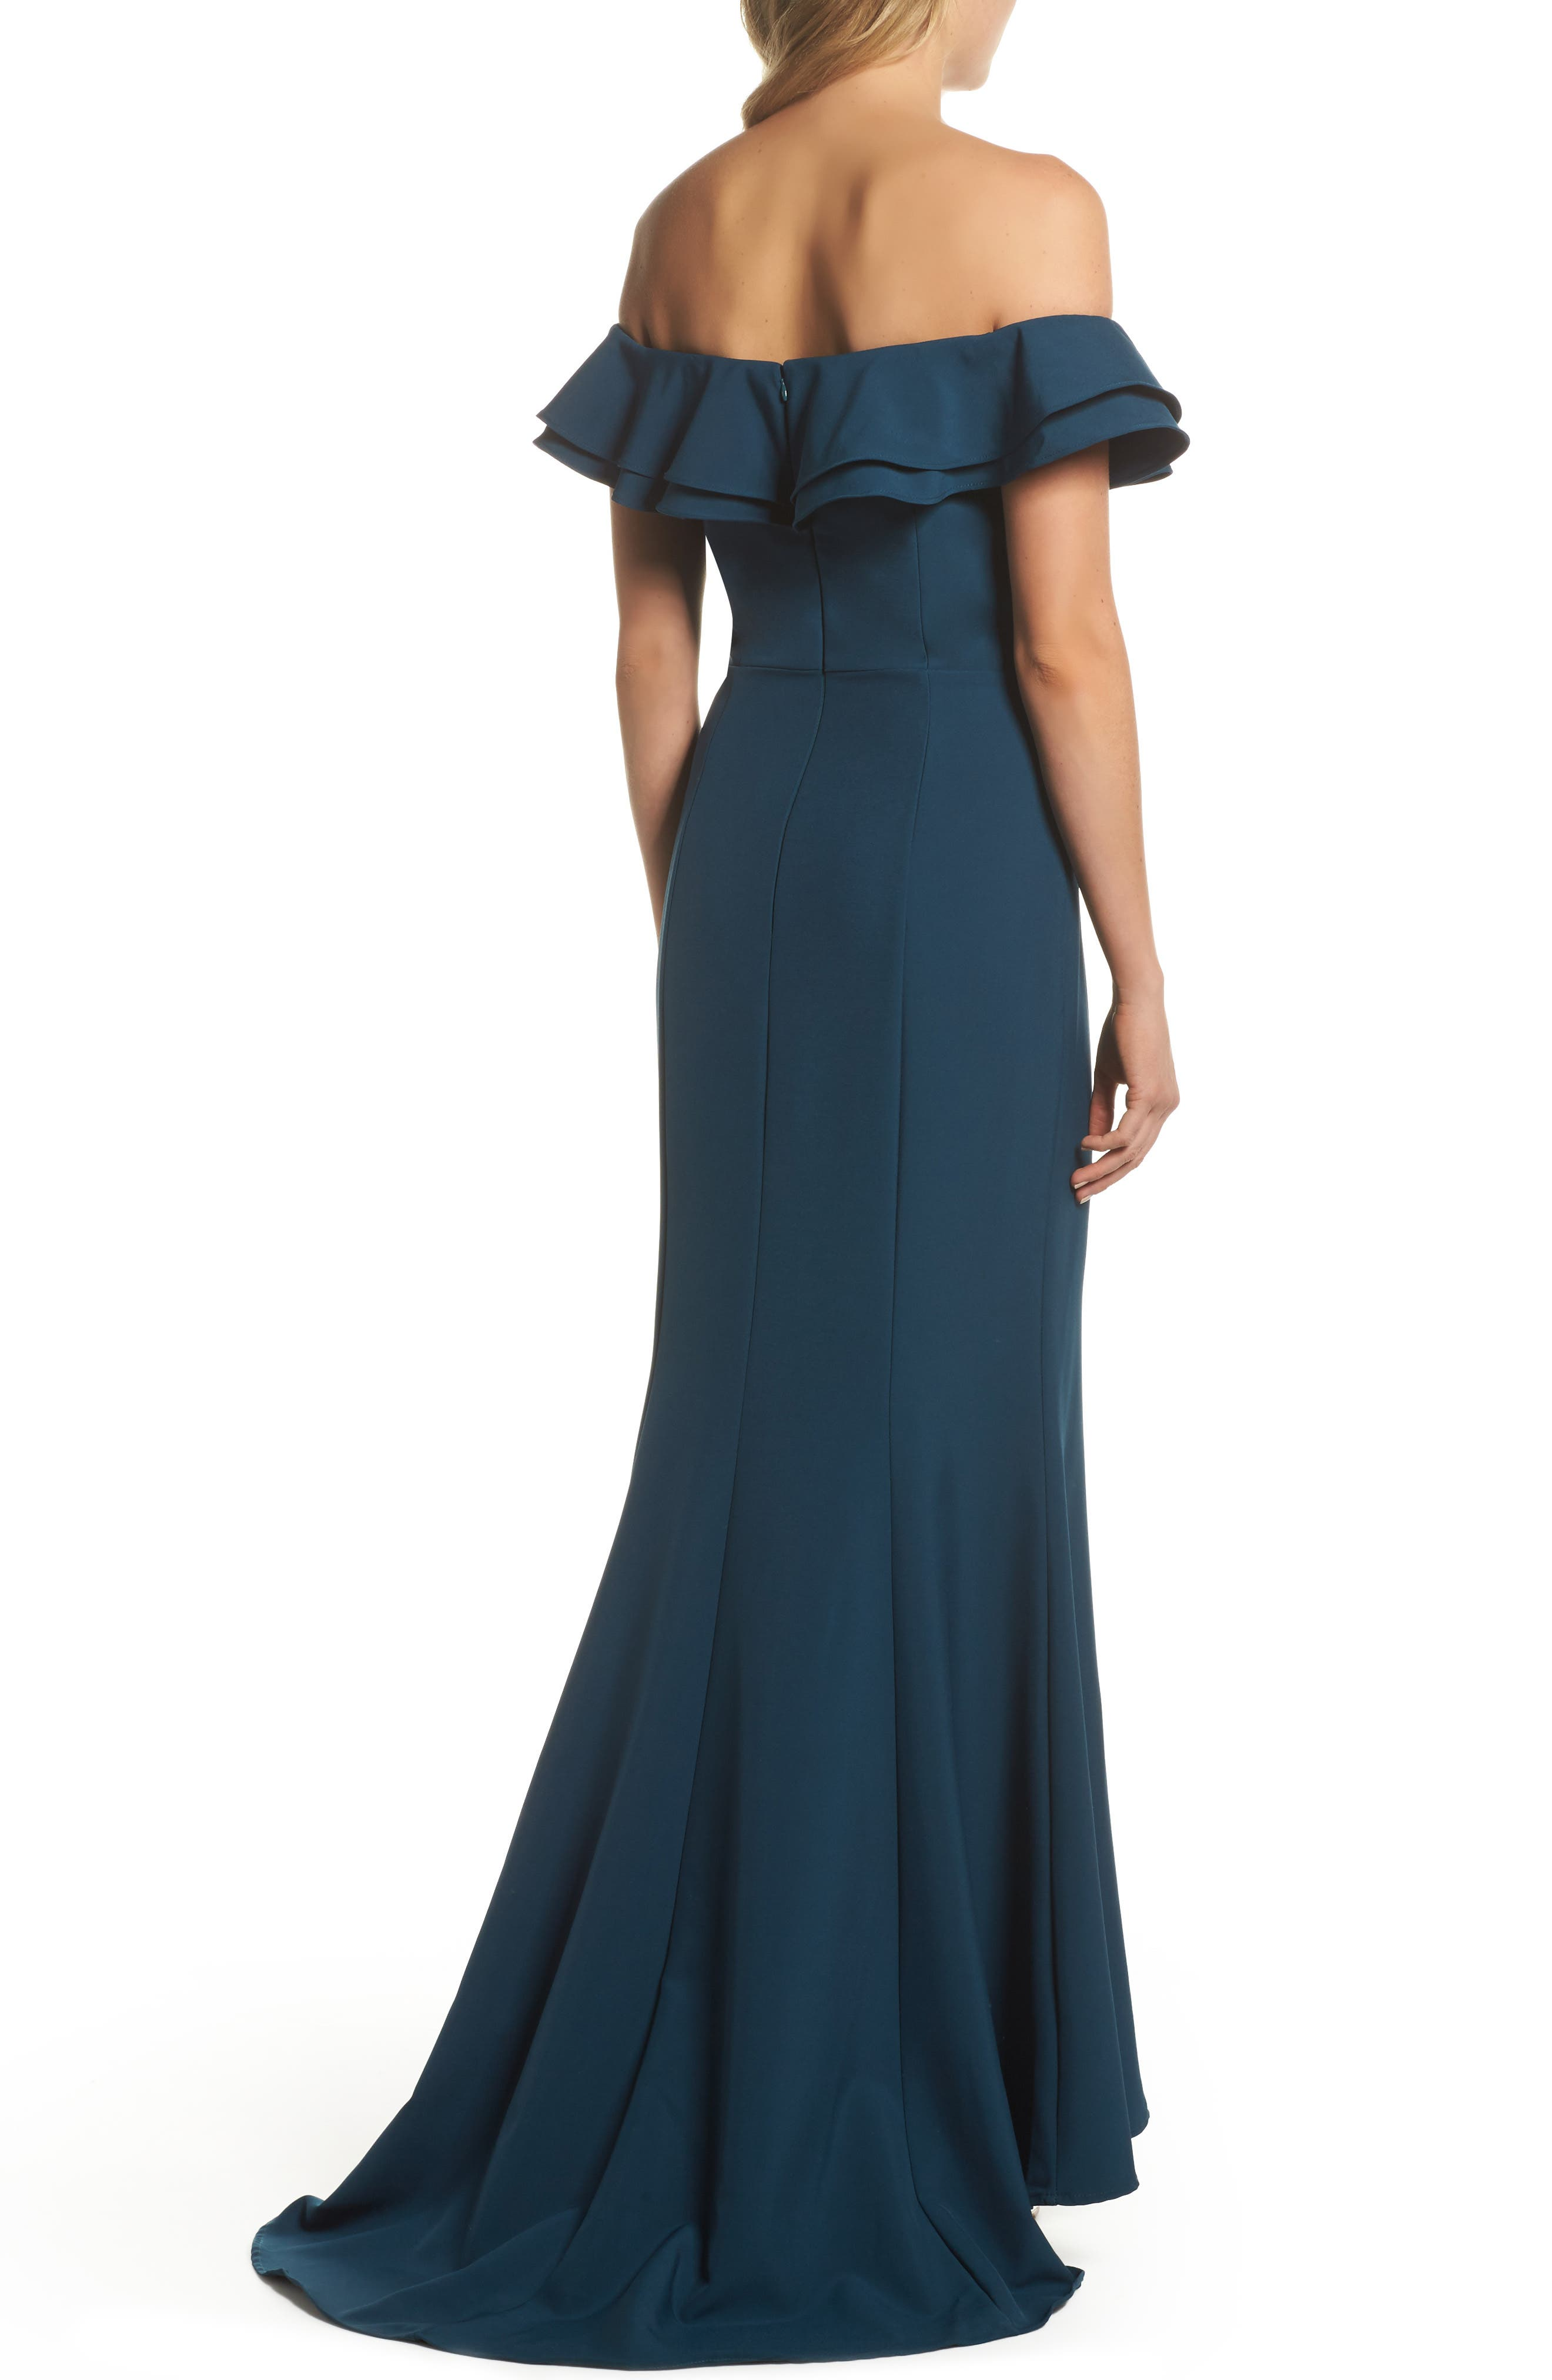 Yazmin Ruffle Off the Shoulder Gown,                             Alternate thumbnail 2, color,